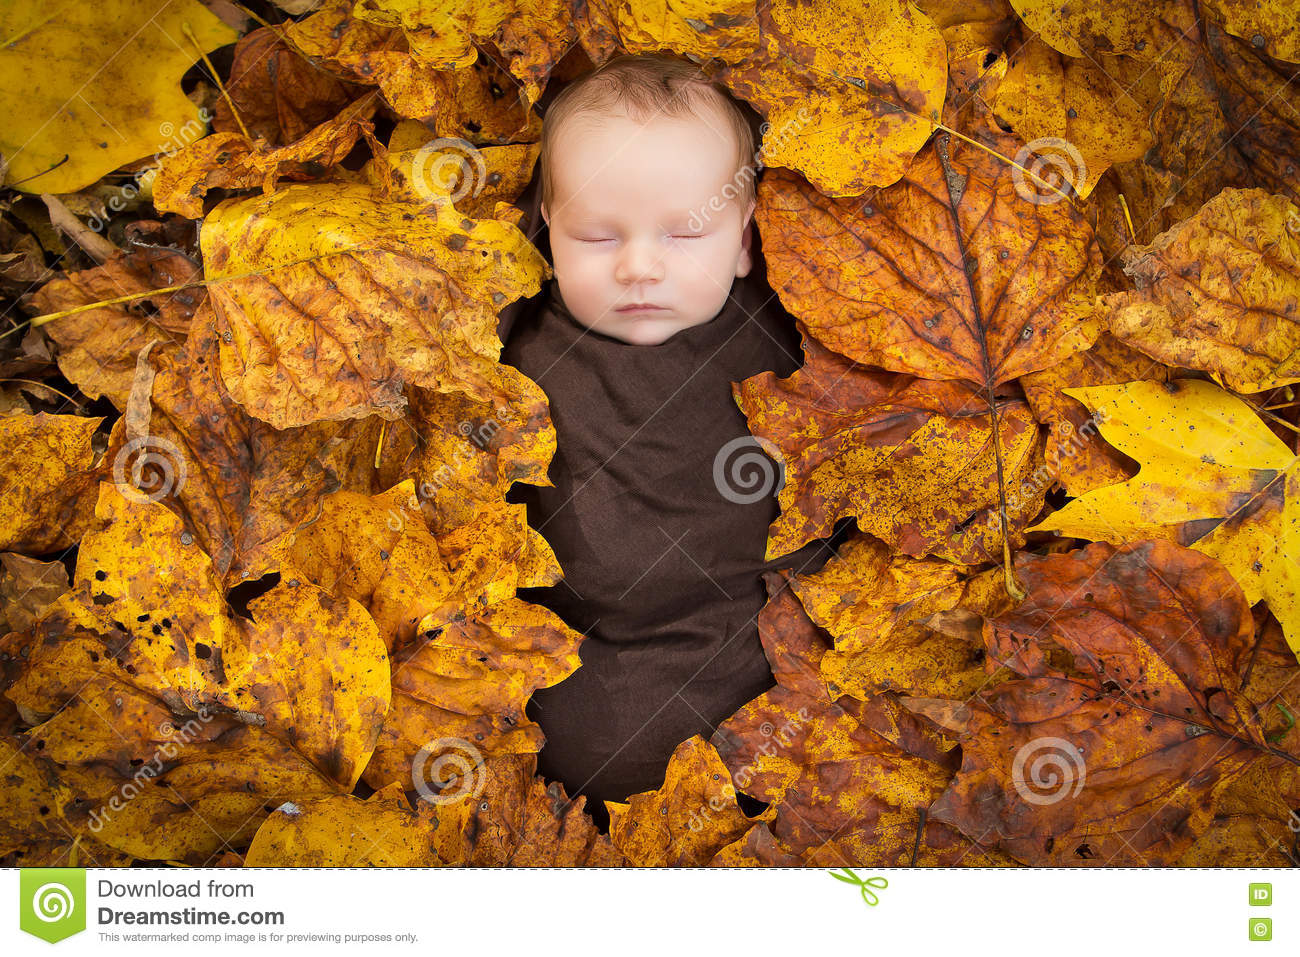 A portrait of a newborn baby wrapped in brown swaddling cloth and surrounded by fall leaves